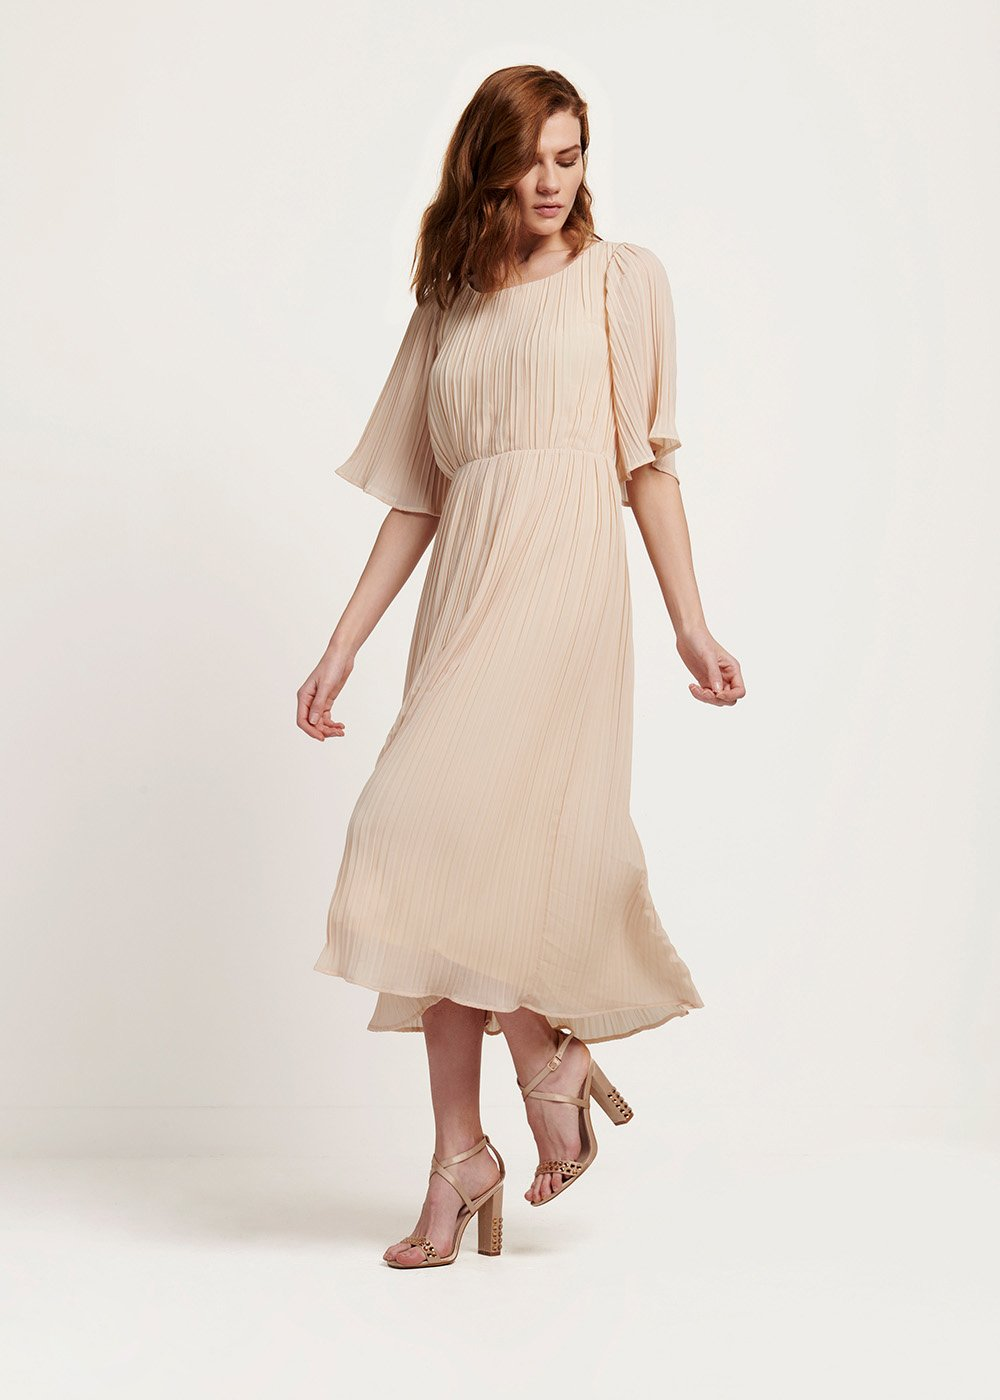 Abito Avril plisse light beige - Light Beige - Donna